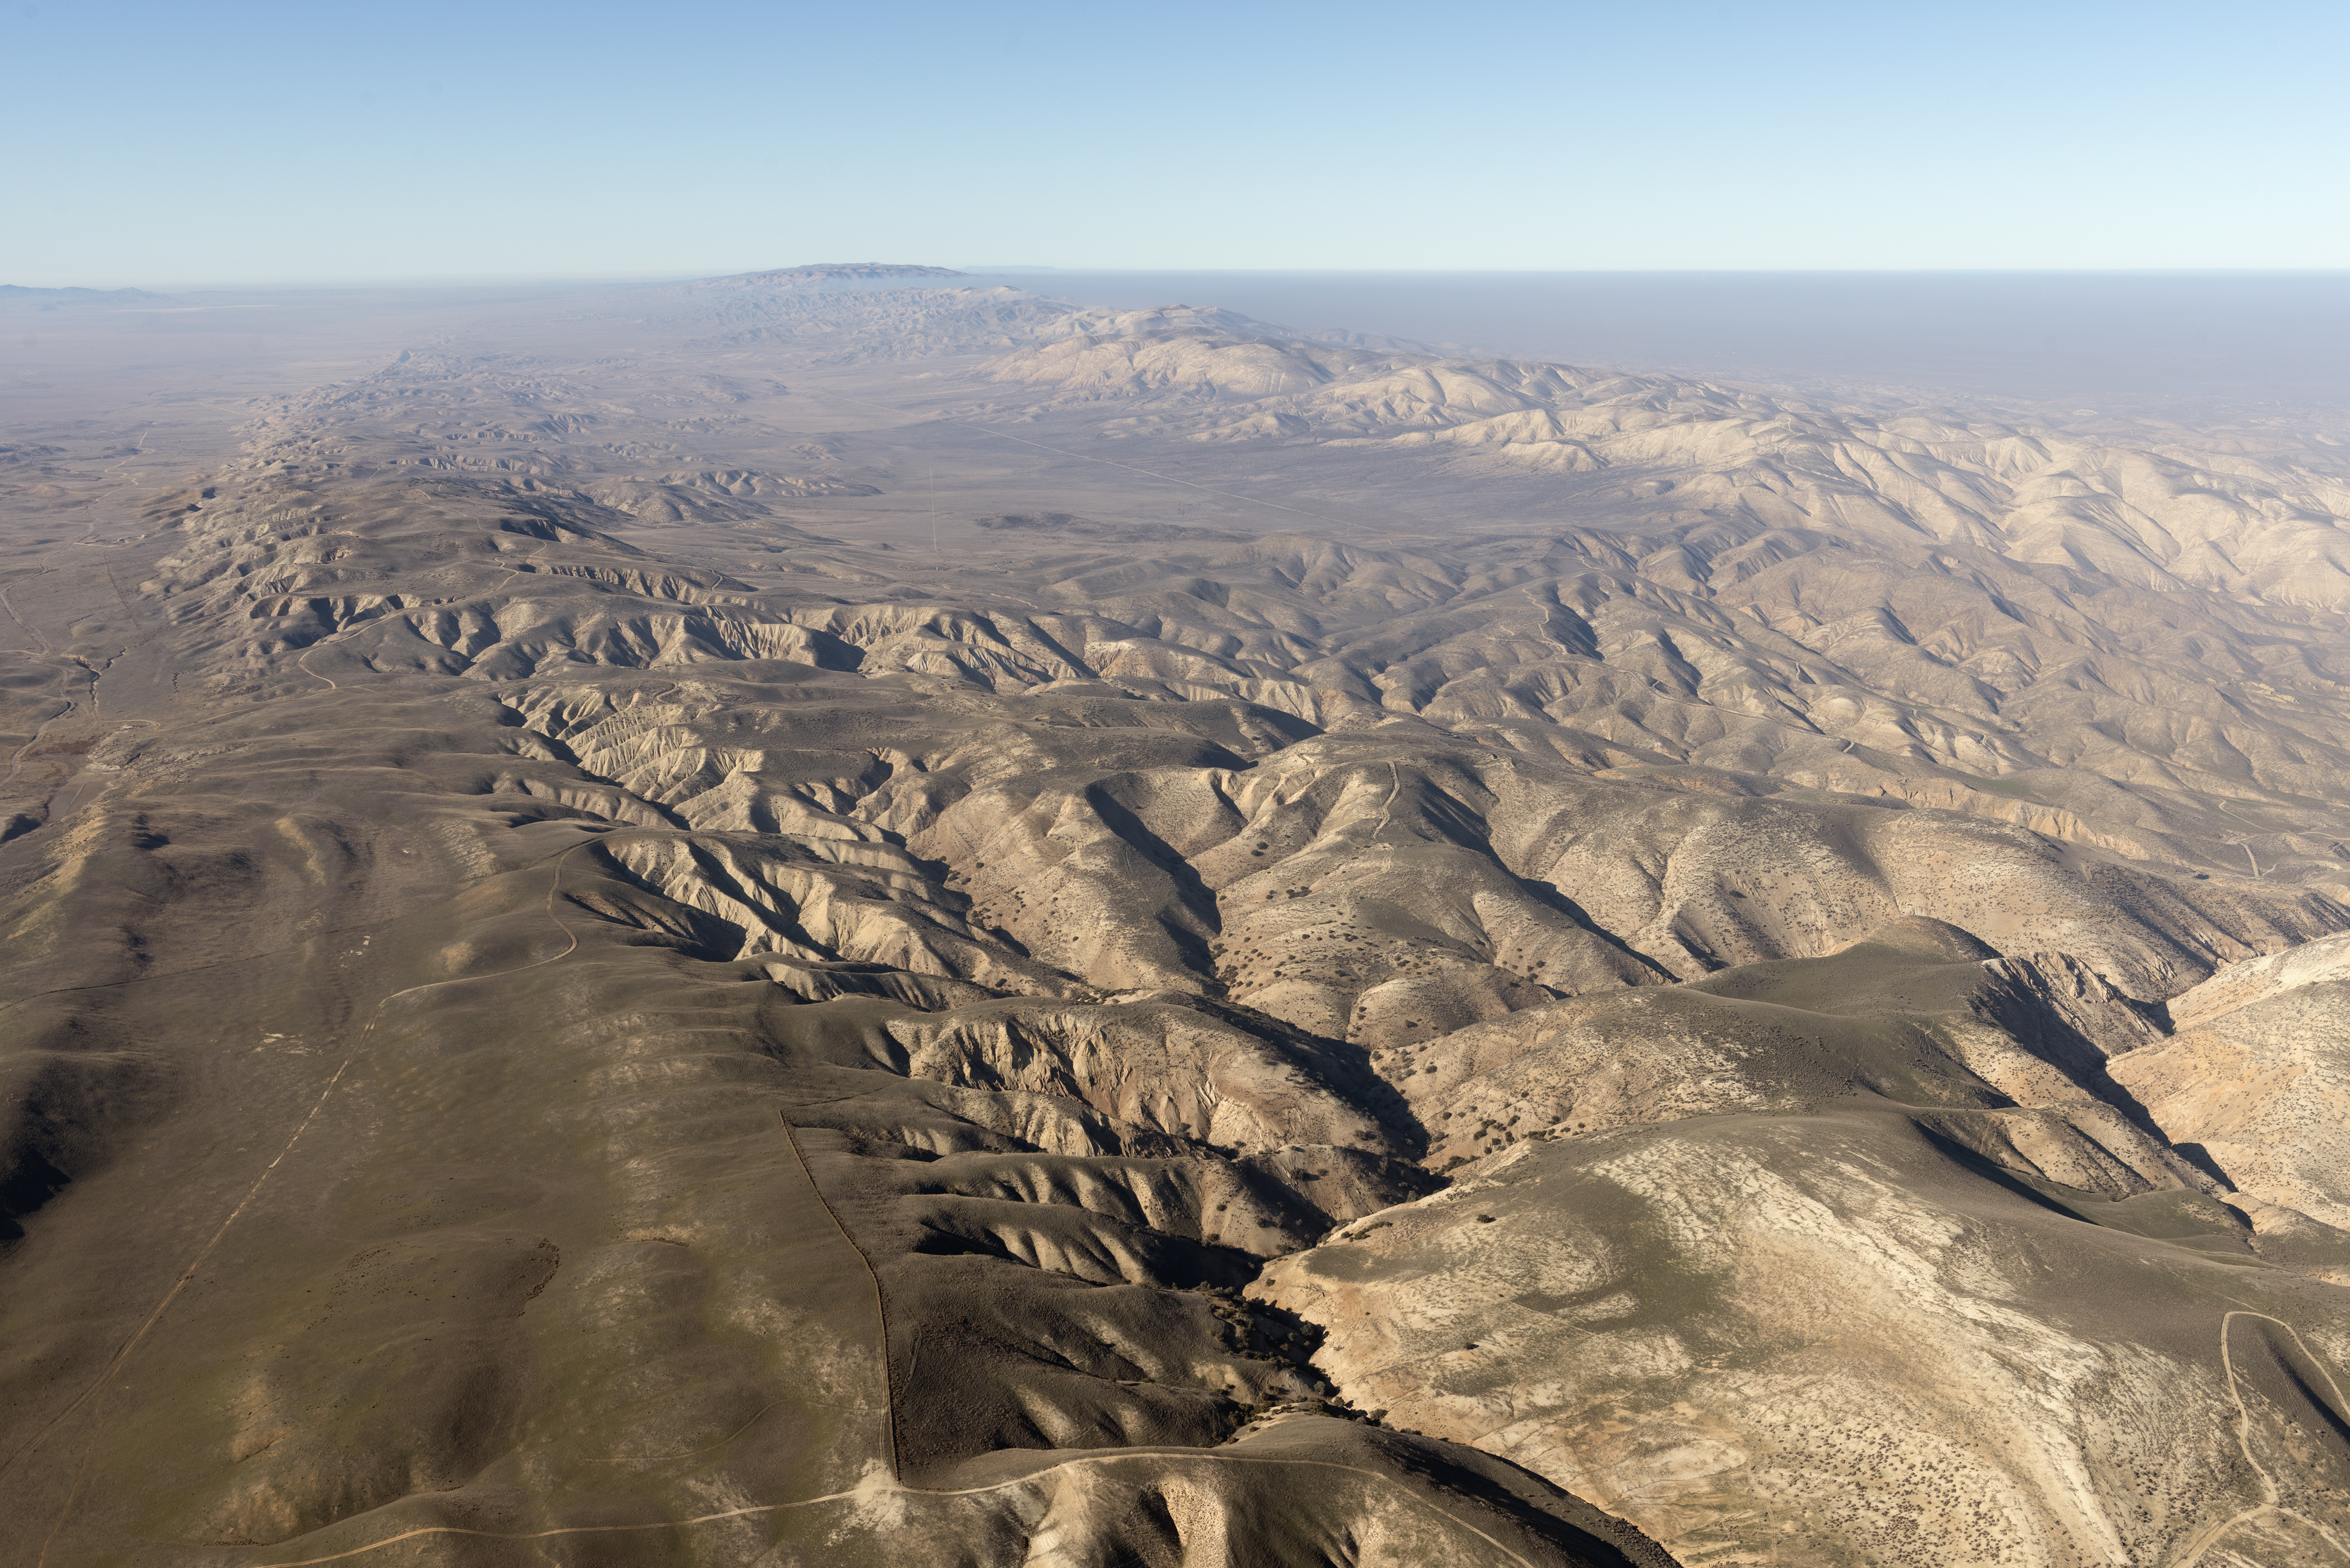 Aerial view of a portion of the San Andreas fault in the California Sierra Madre Mountains.